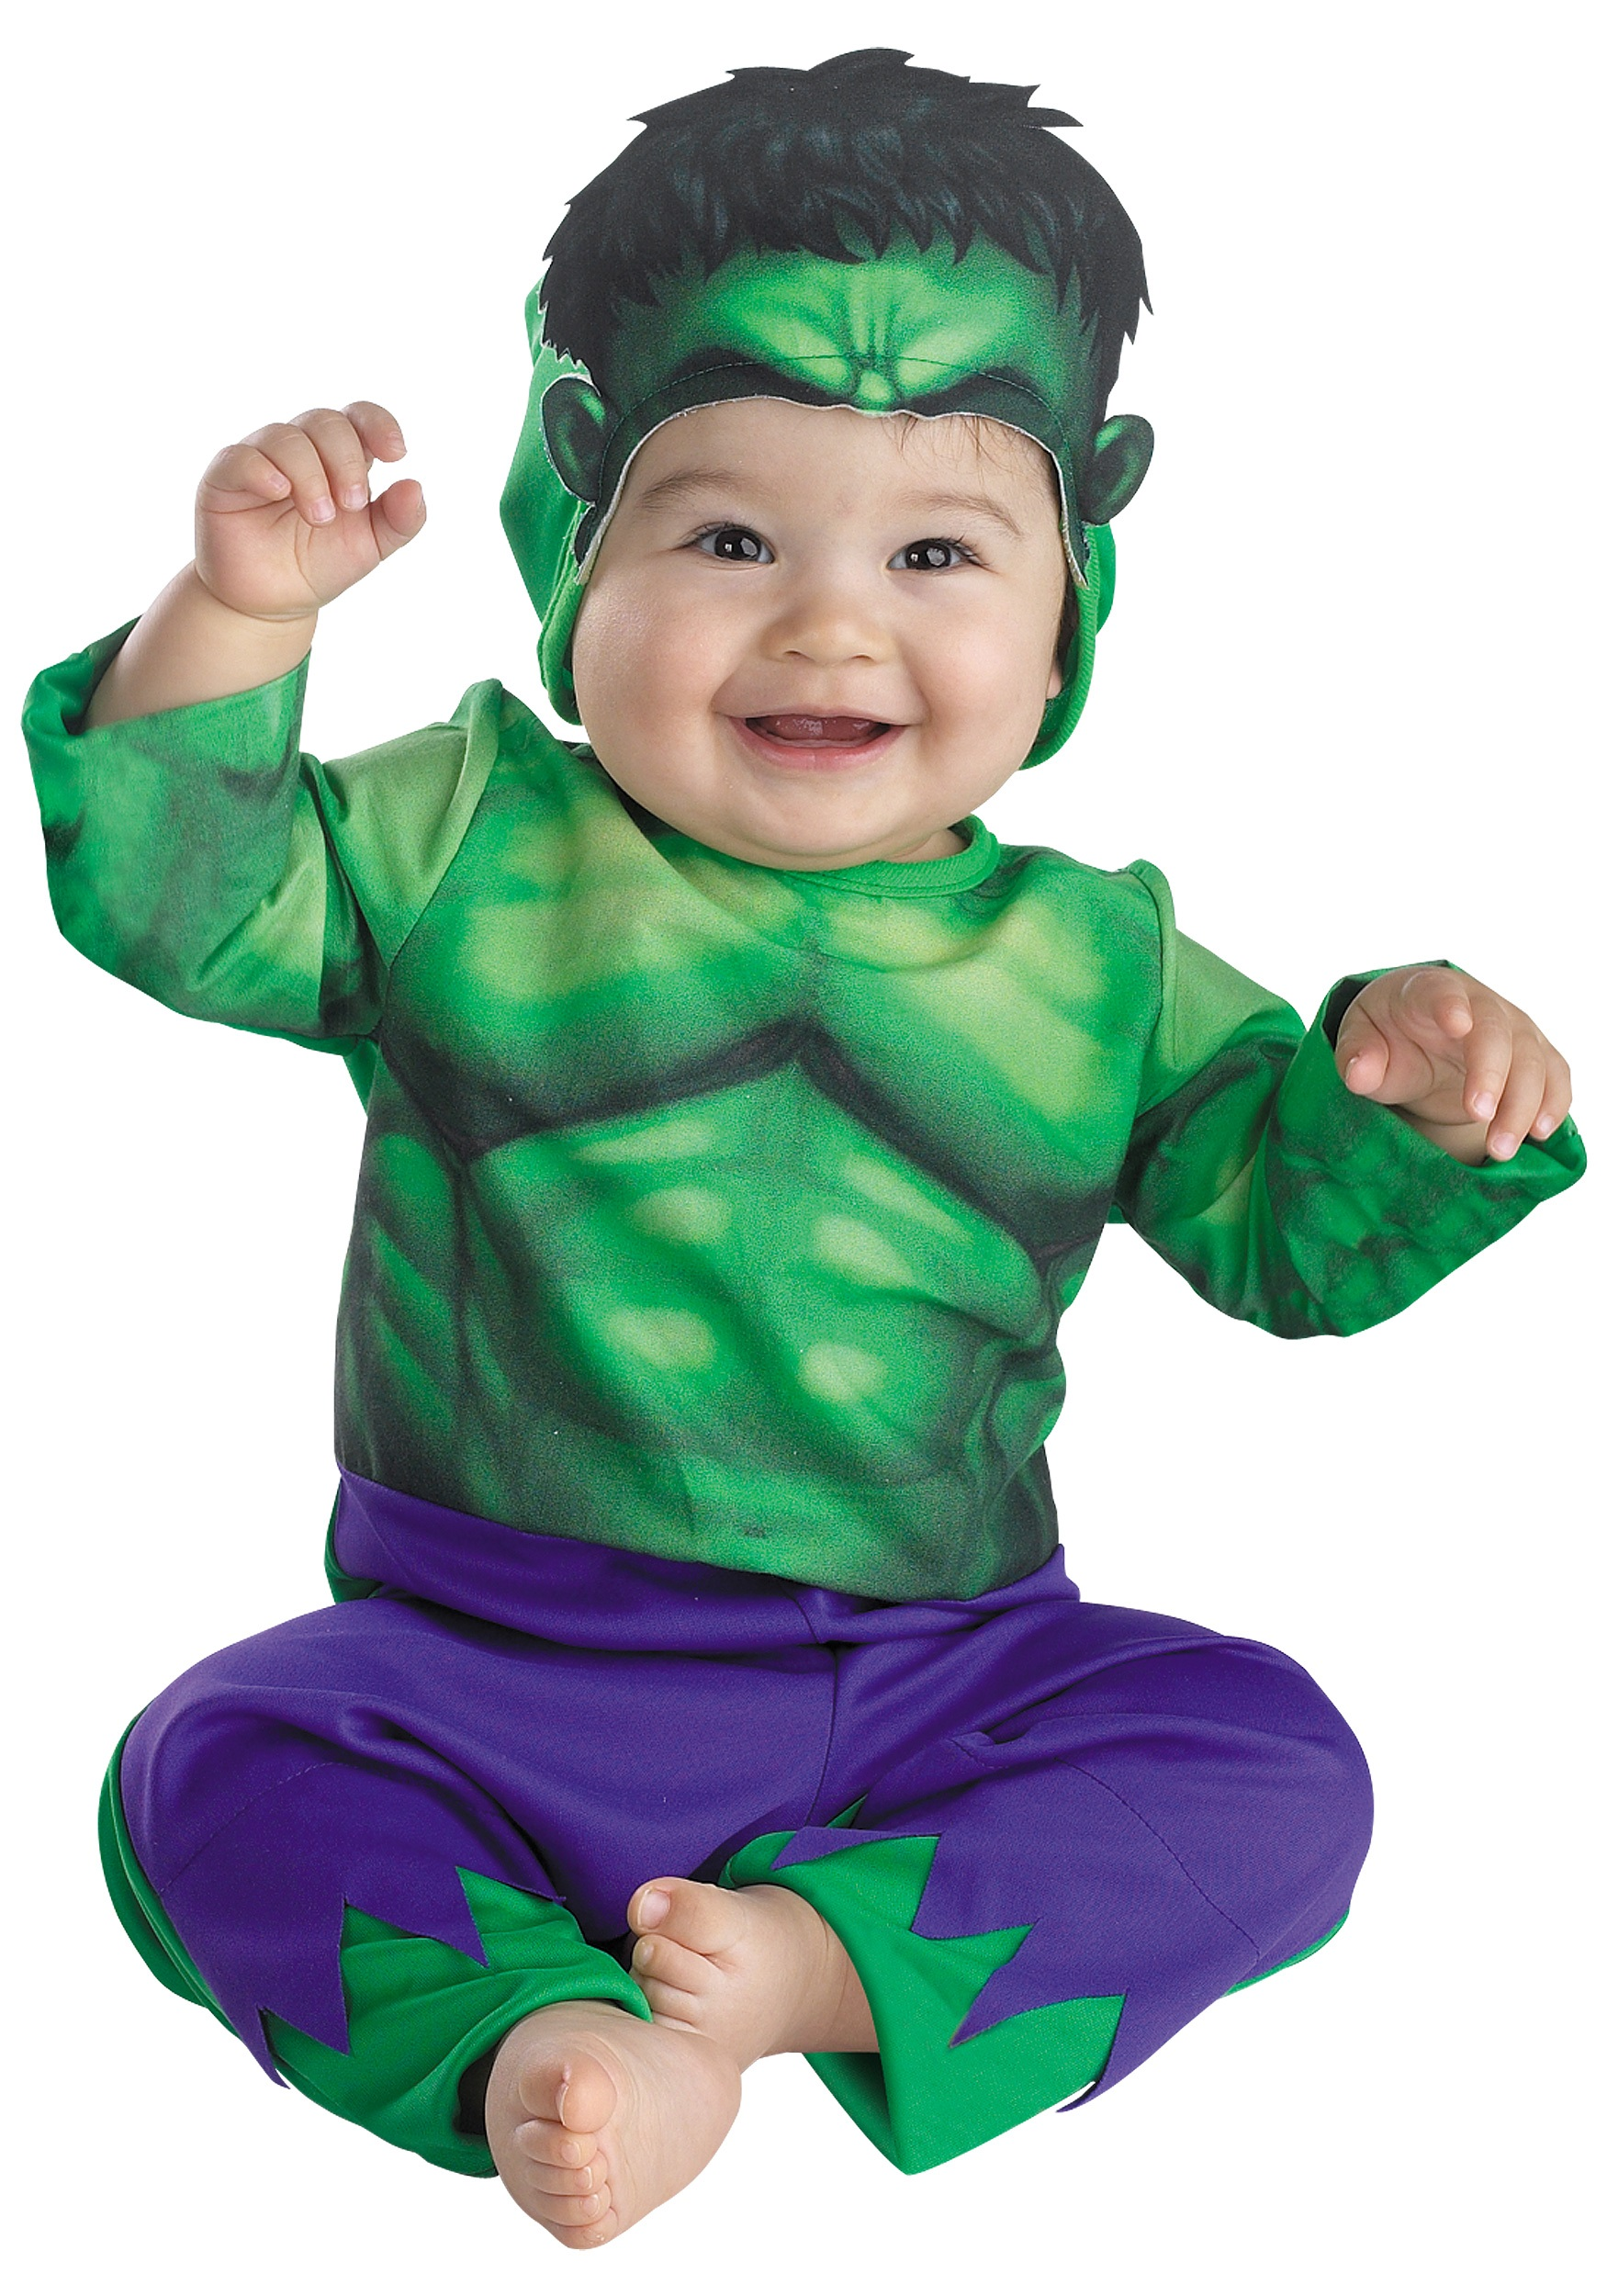 Infant Incredible Hulk Costume  sc 1 st  Halloween Costumes & Infant Incredible Hulk Costume - Halloween Costumes